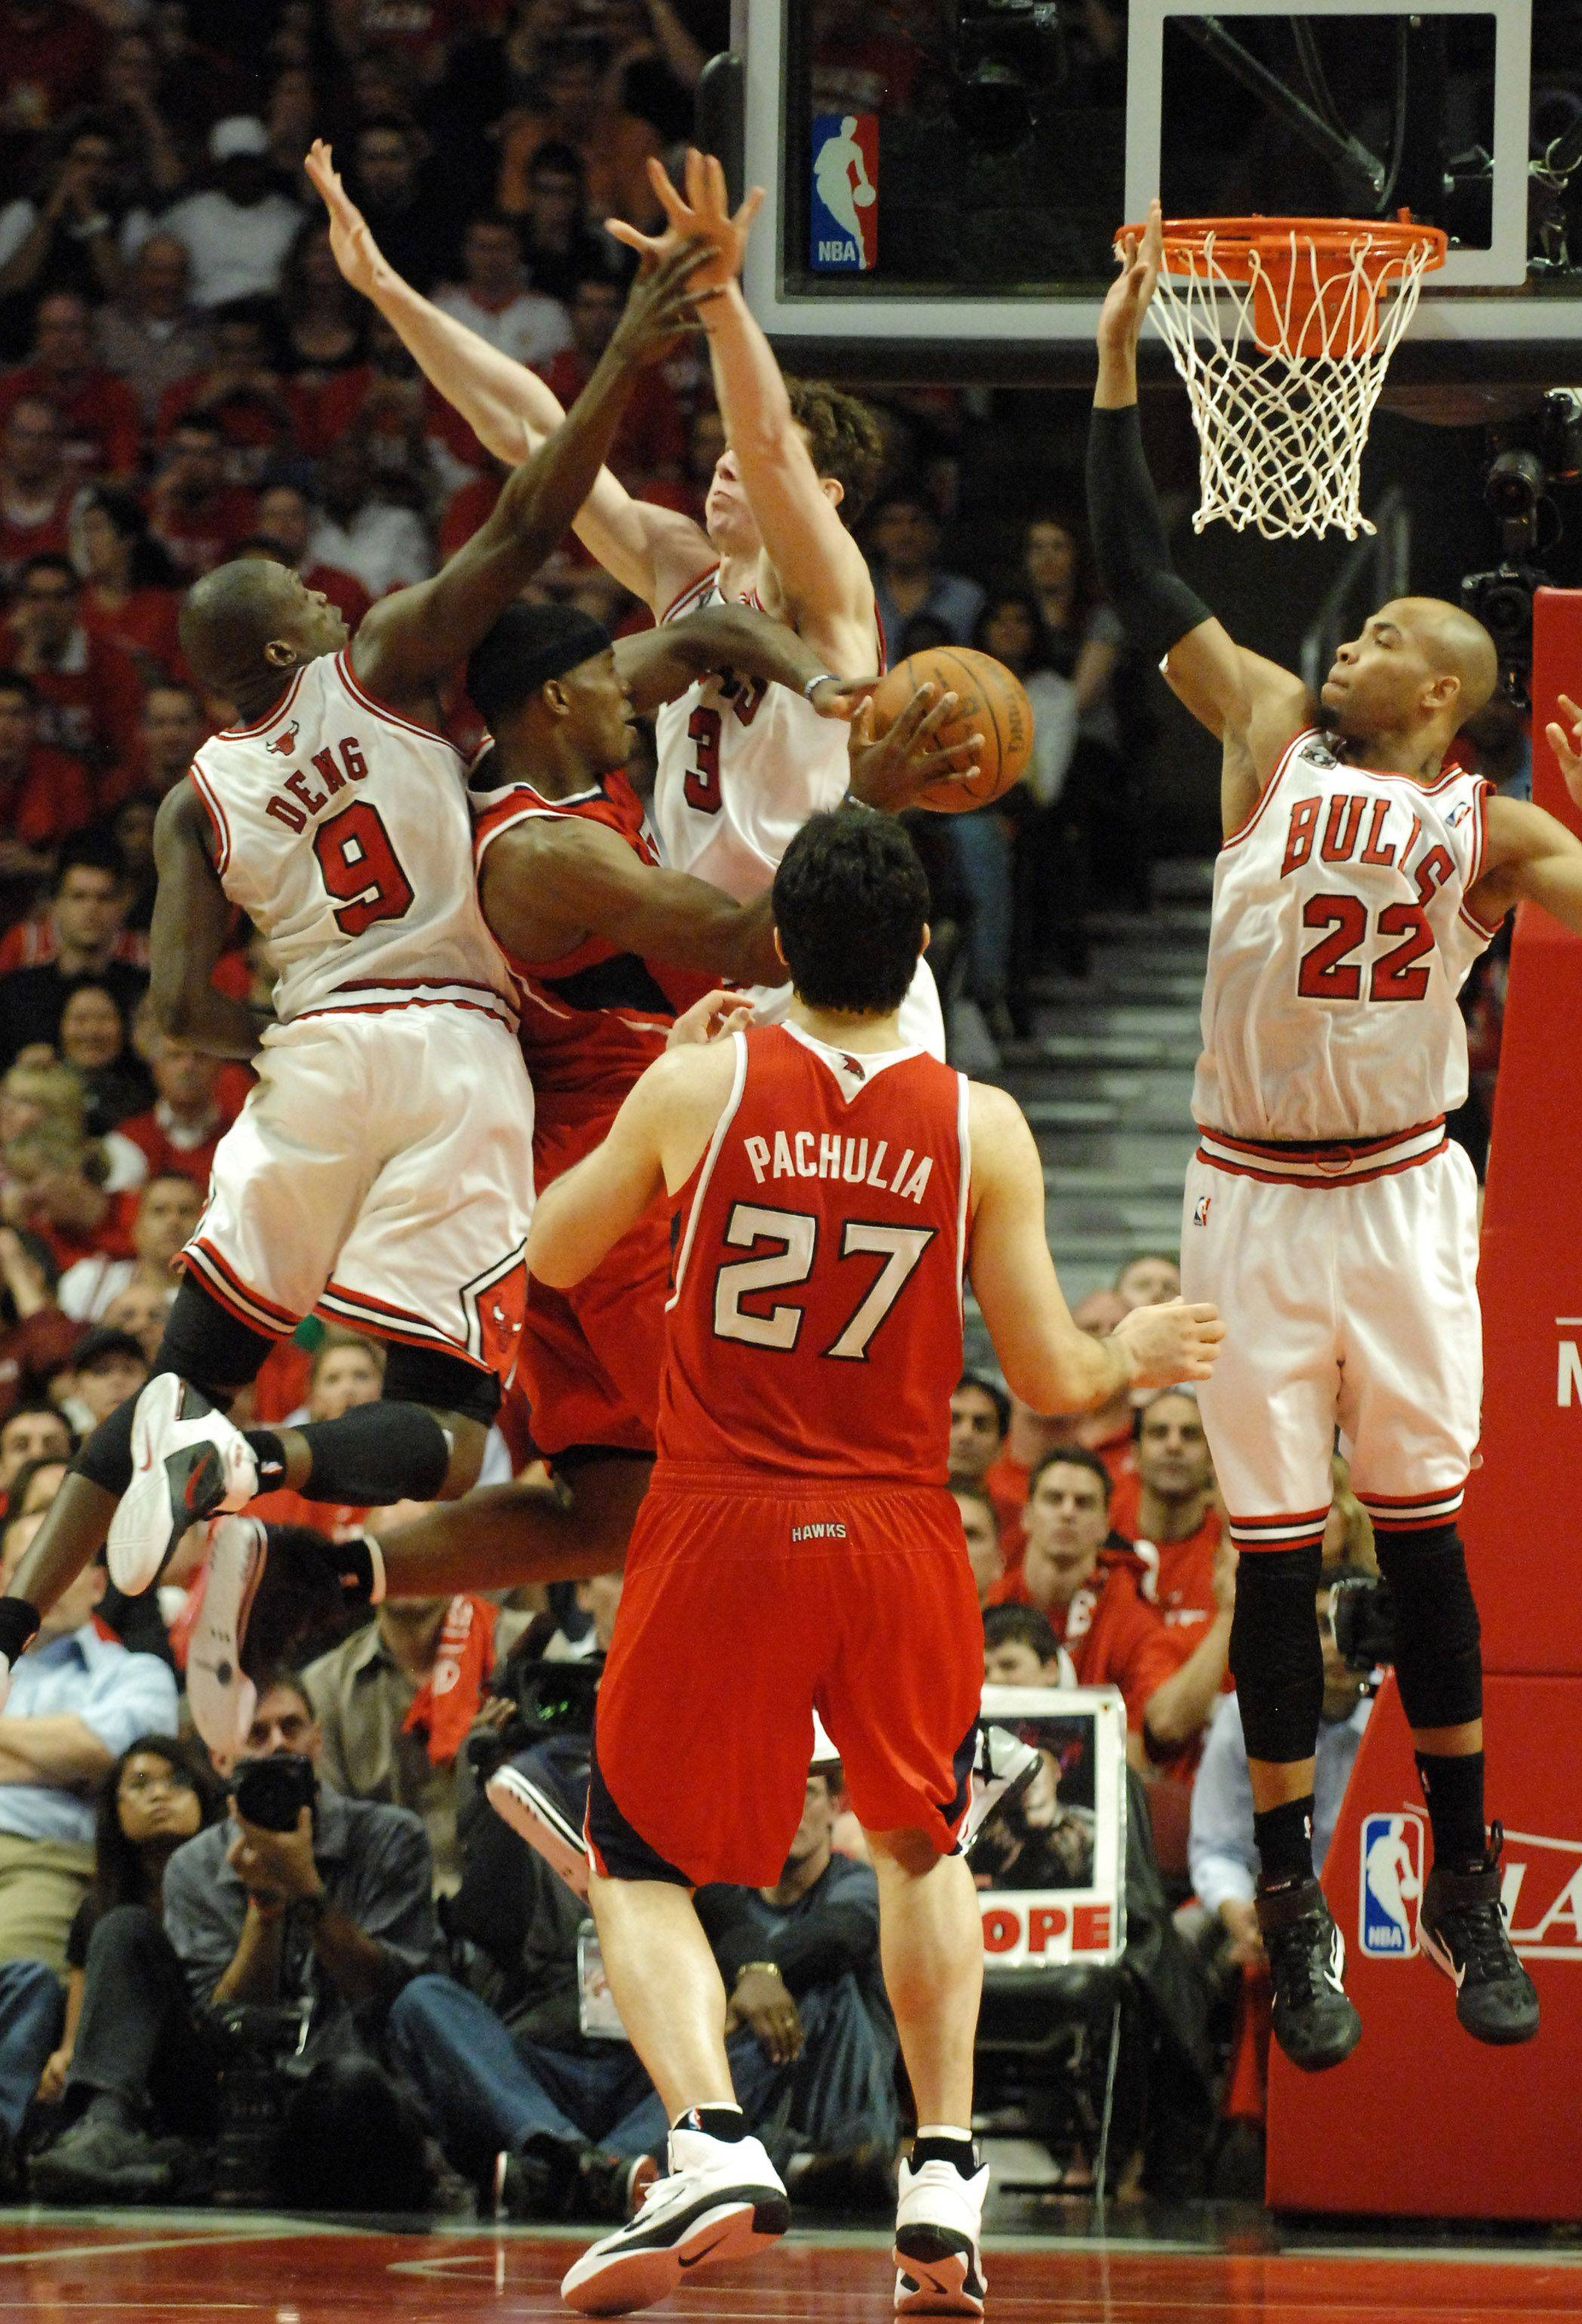 Atlanta Hawks shooting guard Joe Johnson is suffocated as the Bulls clog the lane and force a turnover at the United Center in Chicago Tuesday.